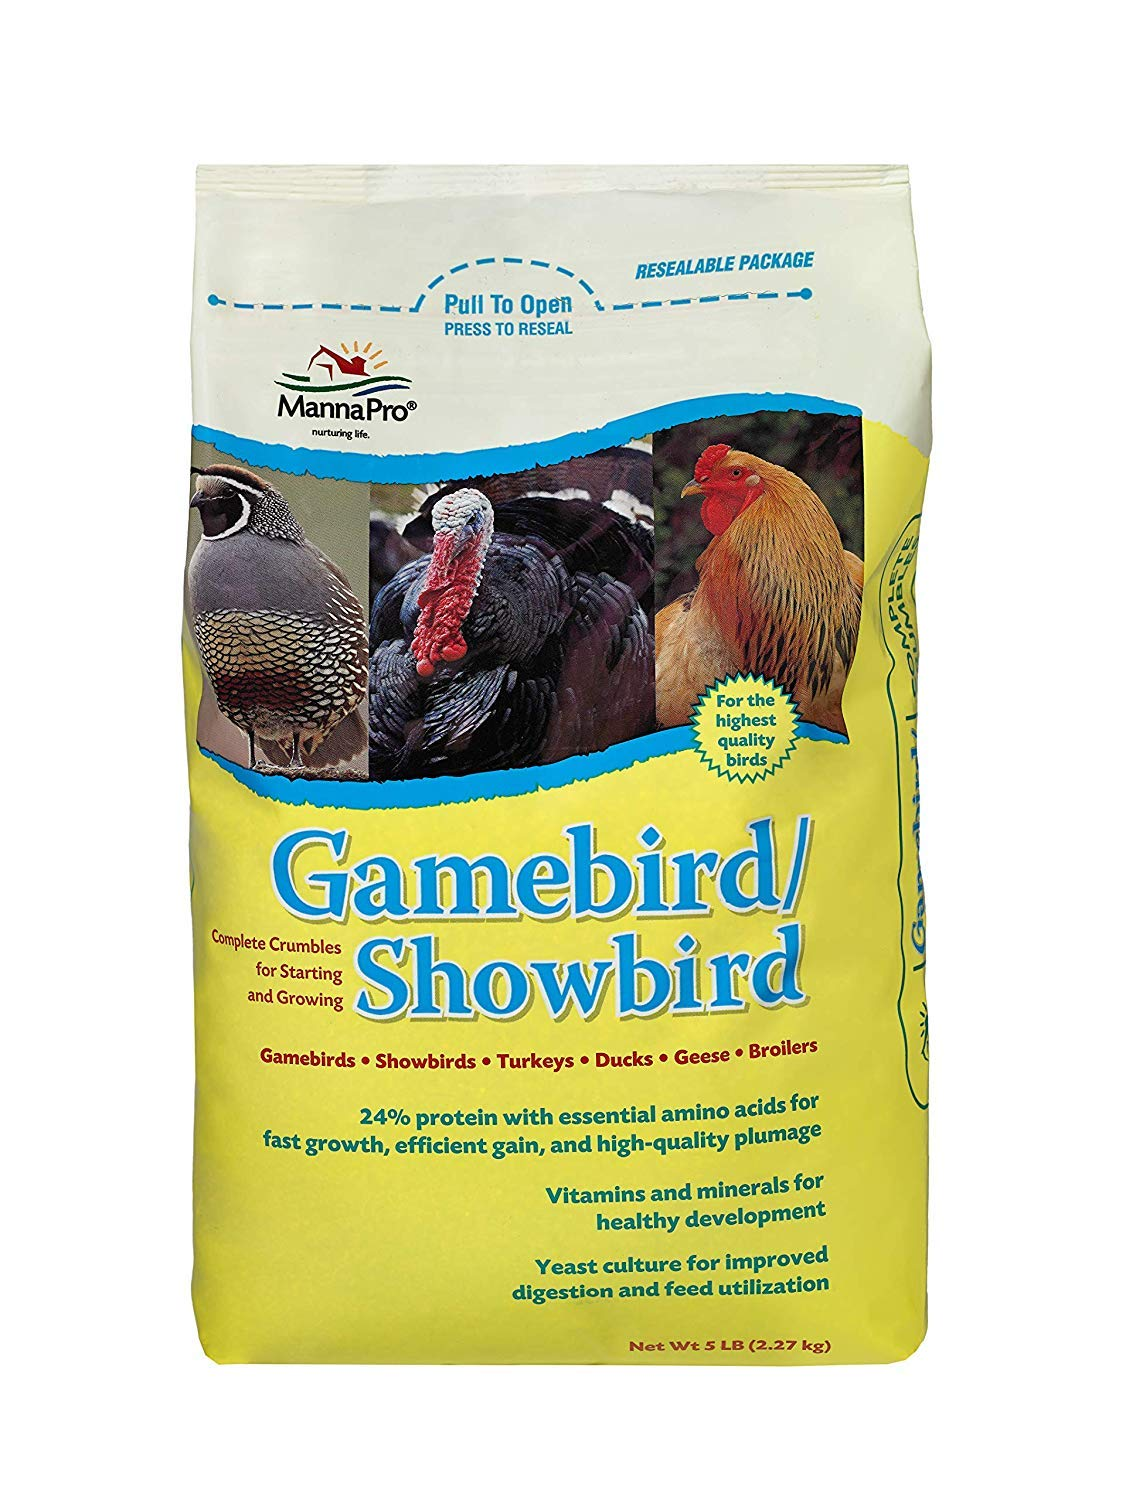 Manna Pro Gamebird Showbird Crumbles | Formulated with Vitamins & Minerals | 5 Pounds by Manna Pro